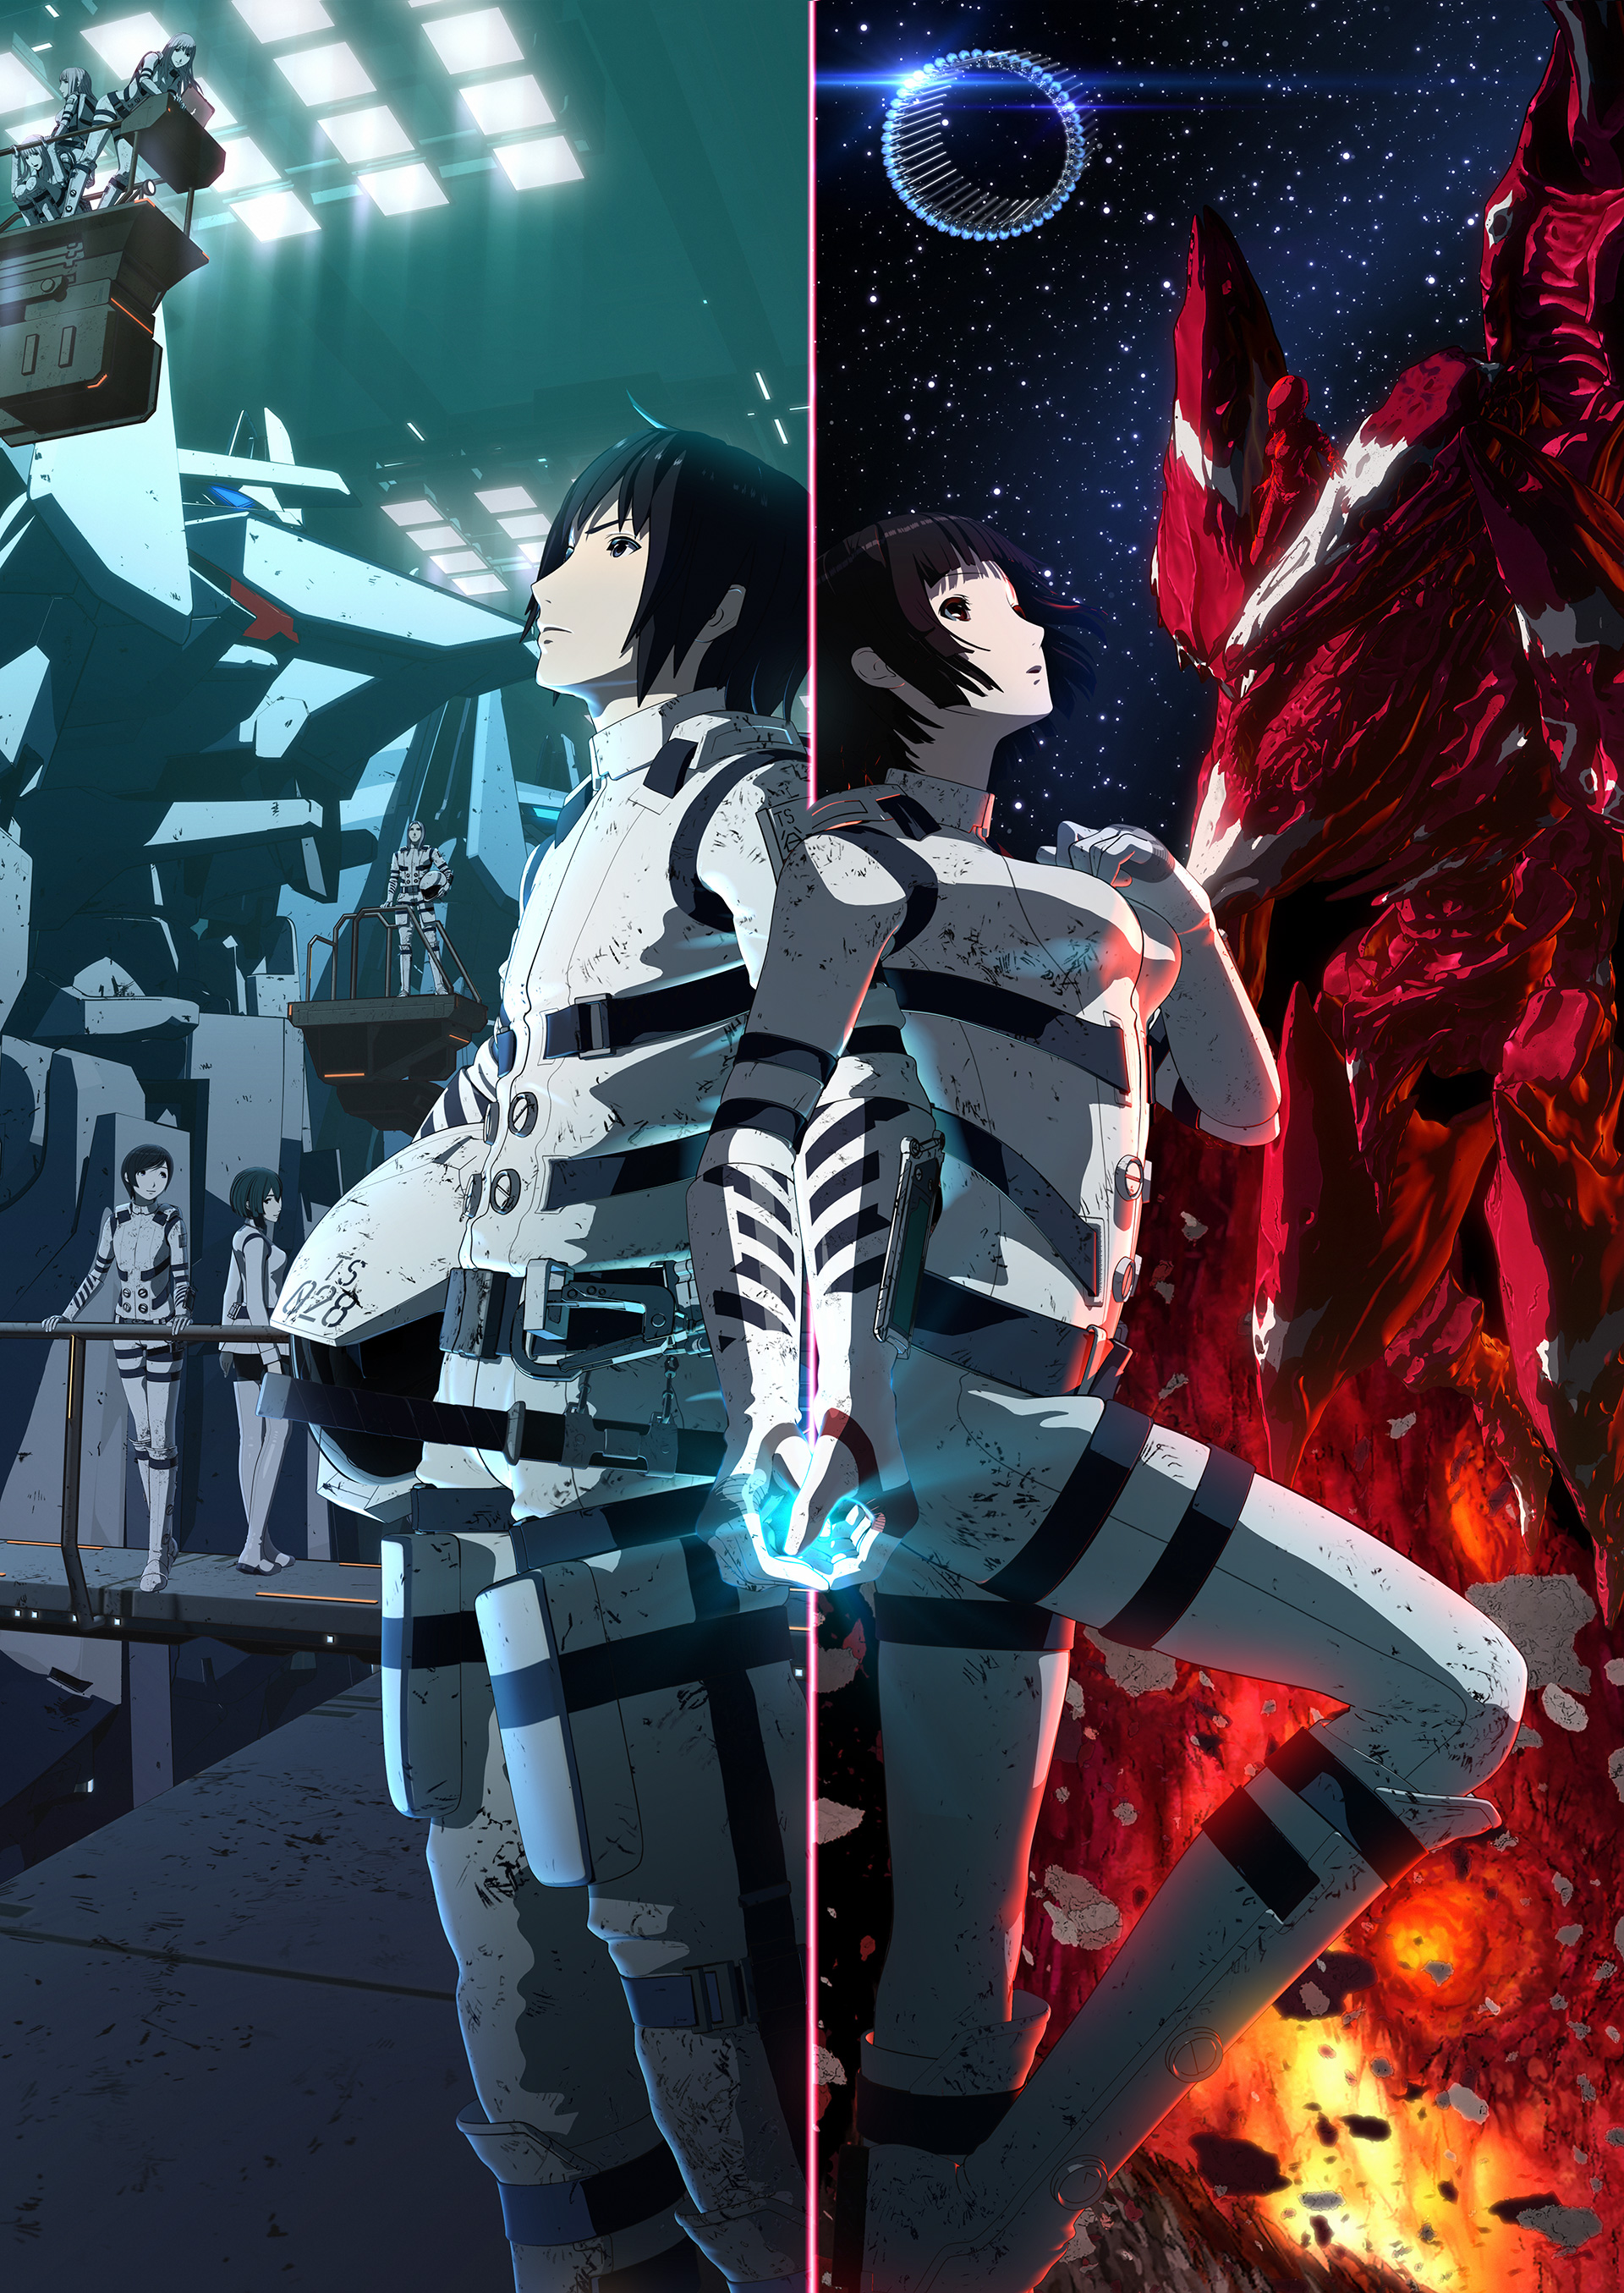 Sidonia no Kishi Movie Visual haruhichan.com Knights of Sidonia movie visual